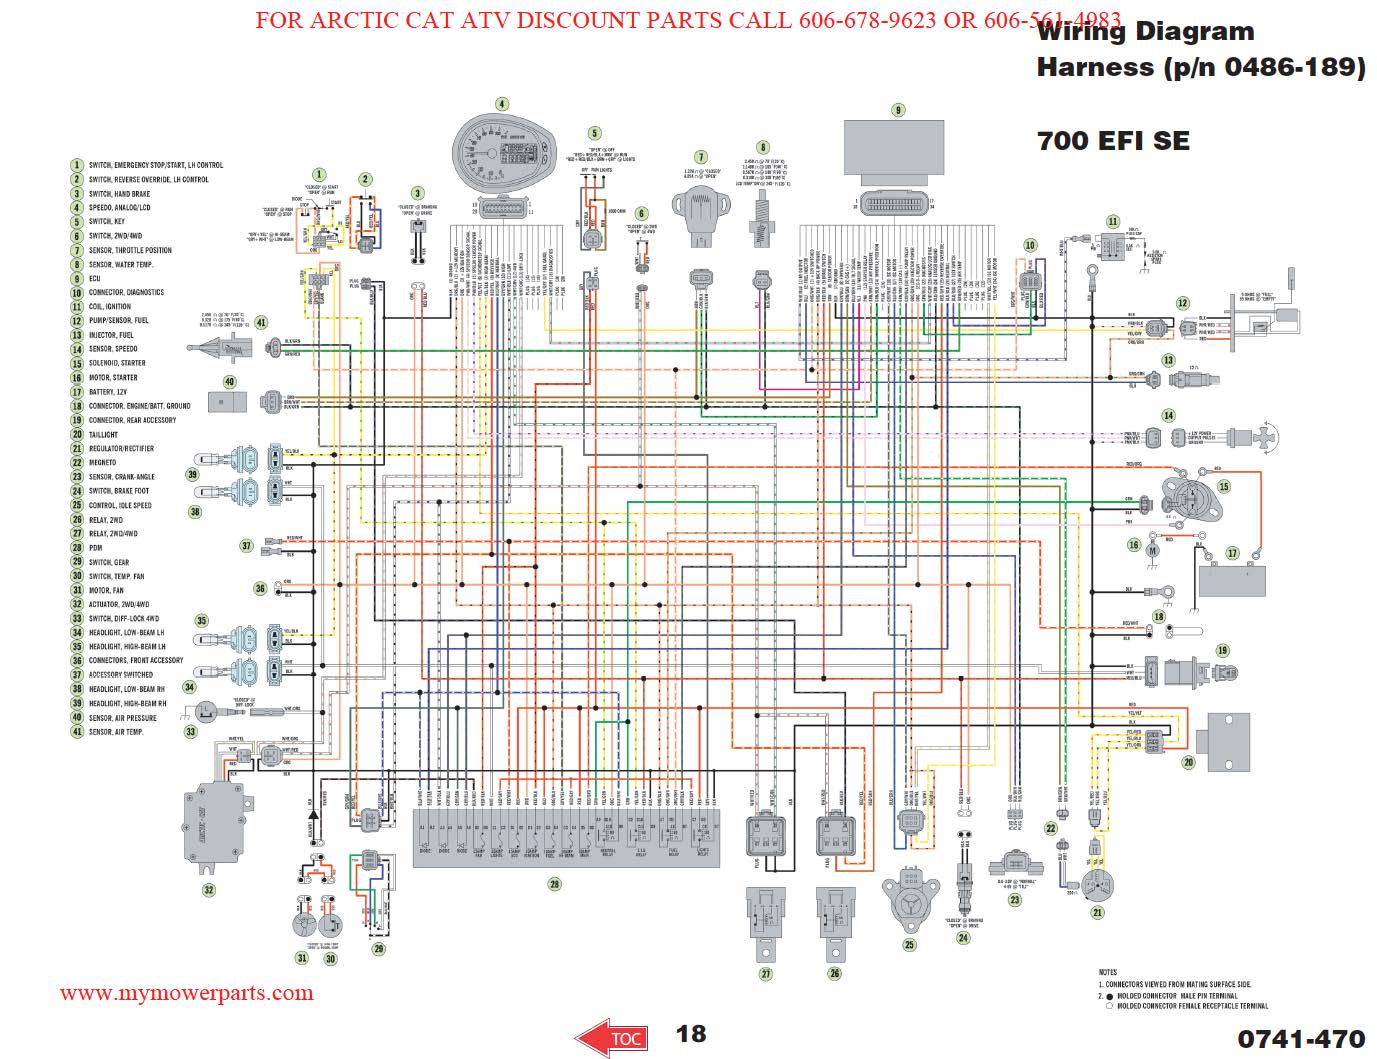 2001 Yamaha Srx 700 Wiring Diagram Great Installation Of King Quad Voltage Regulator Rh 16 12 Corruptionincoal Org 2007 Grizzly